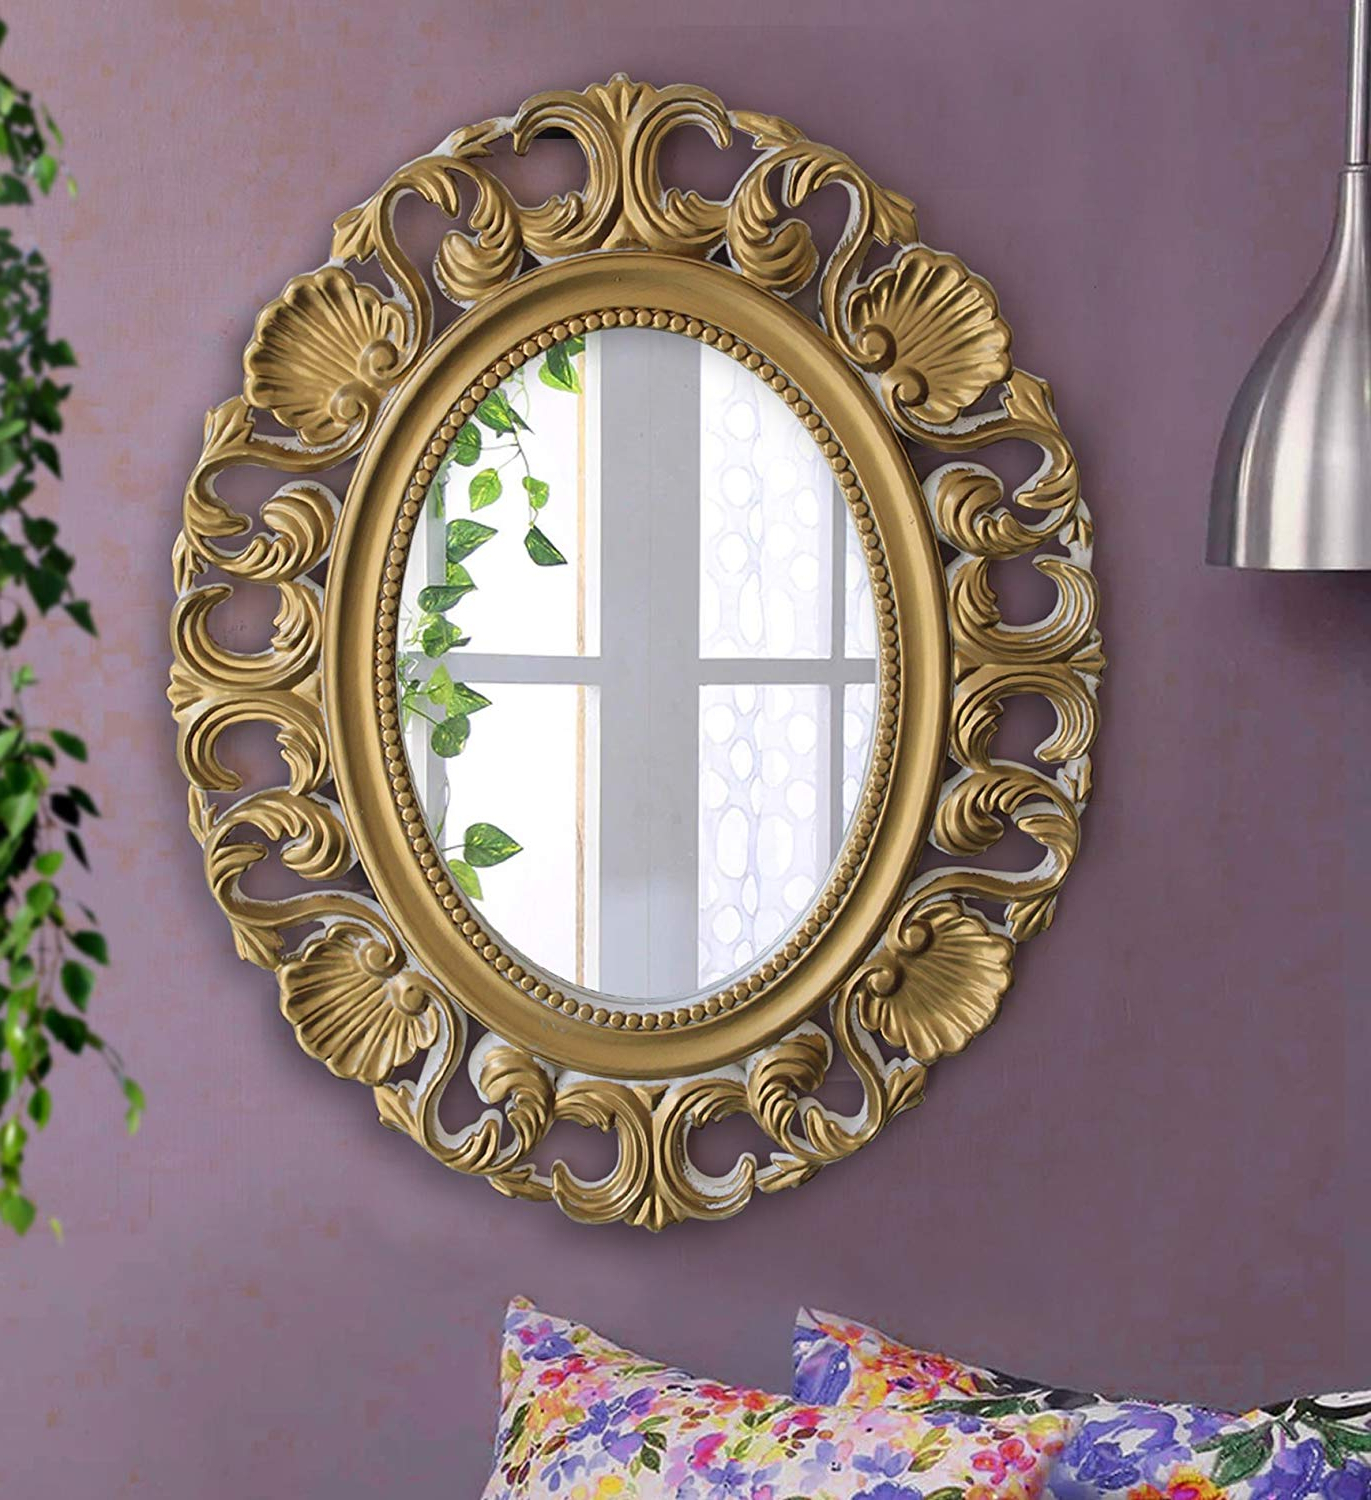 Buy Tied Ribbons Antique Vintage Style Plastic Wall Mirror (38 Cm X Inside Popular Plastic Wall Mirrors (View 3 of 20)